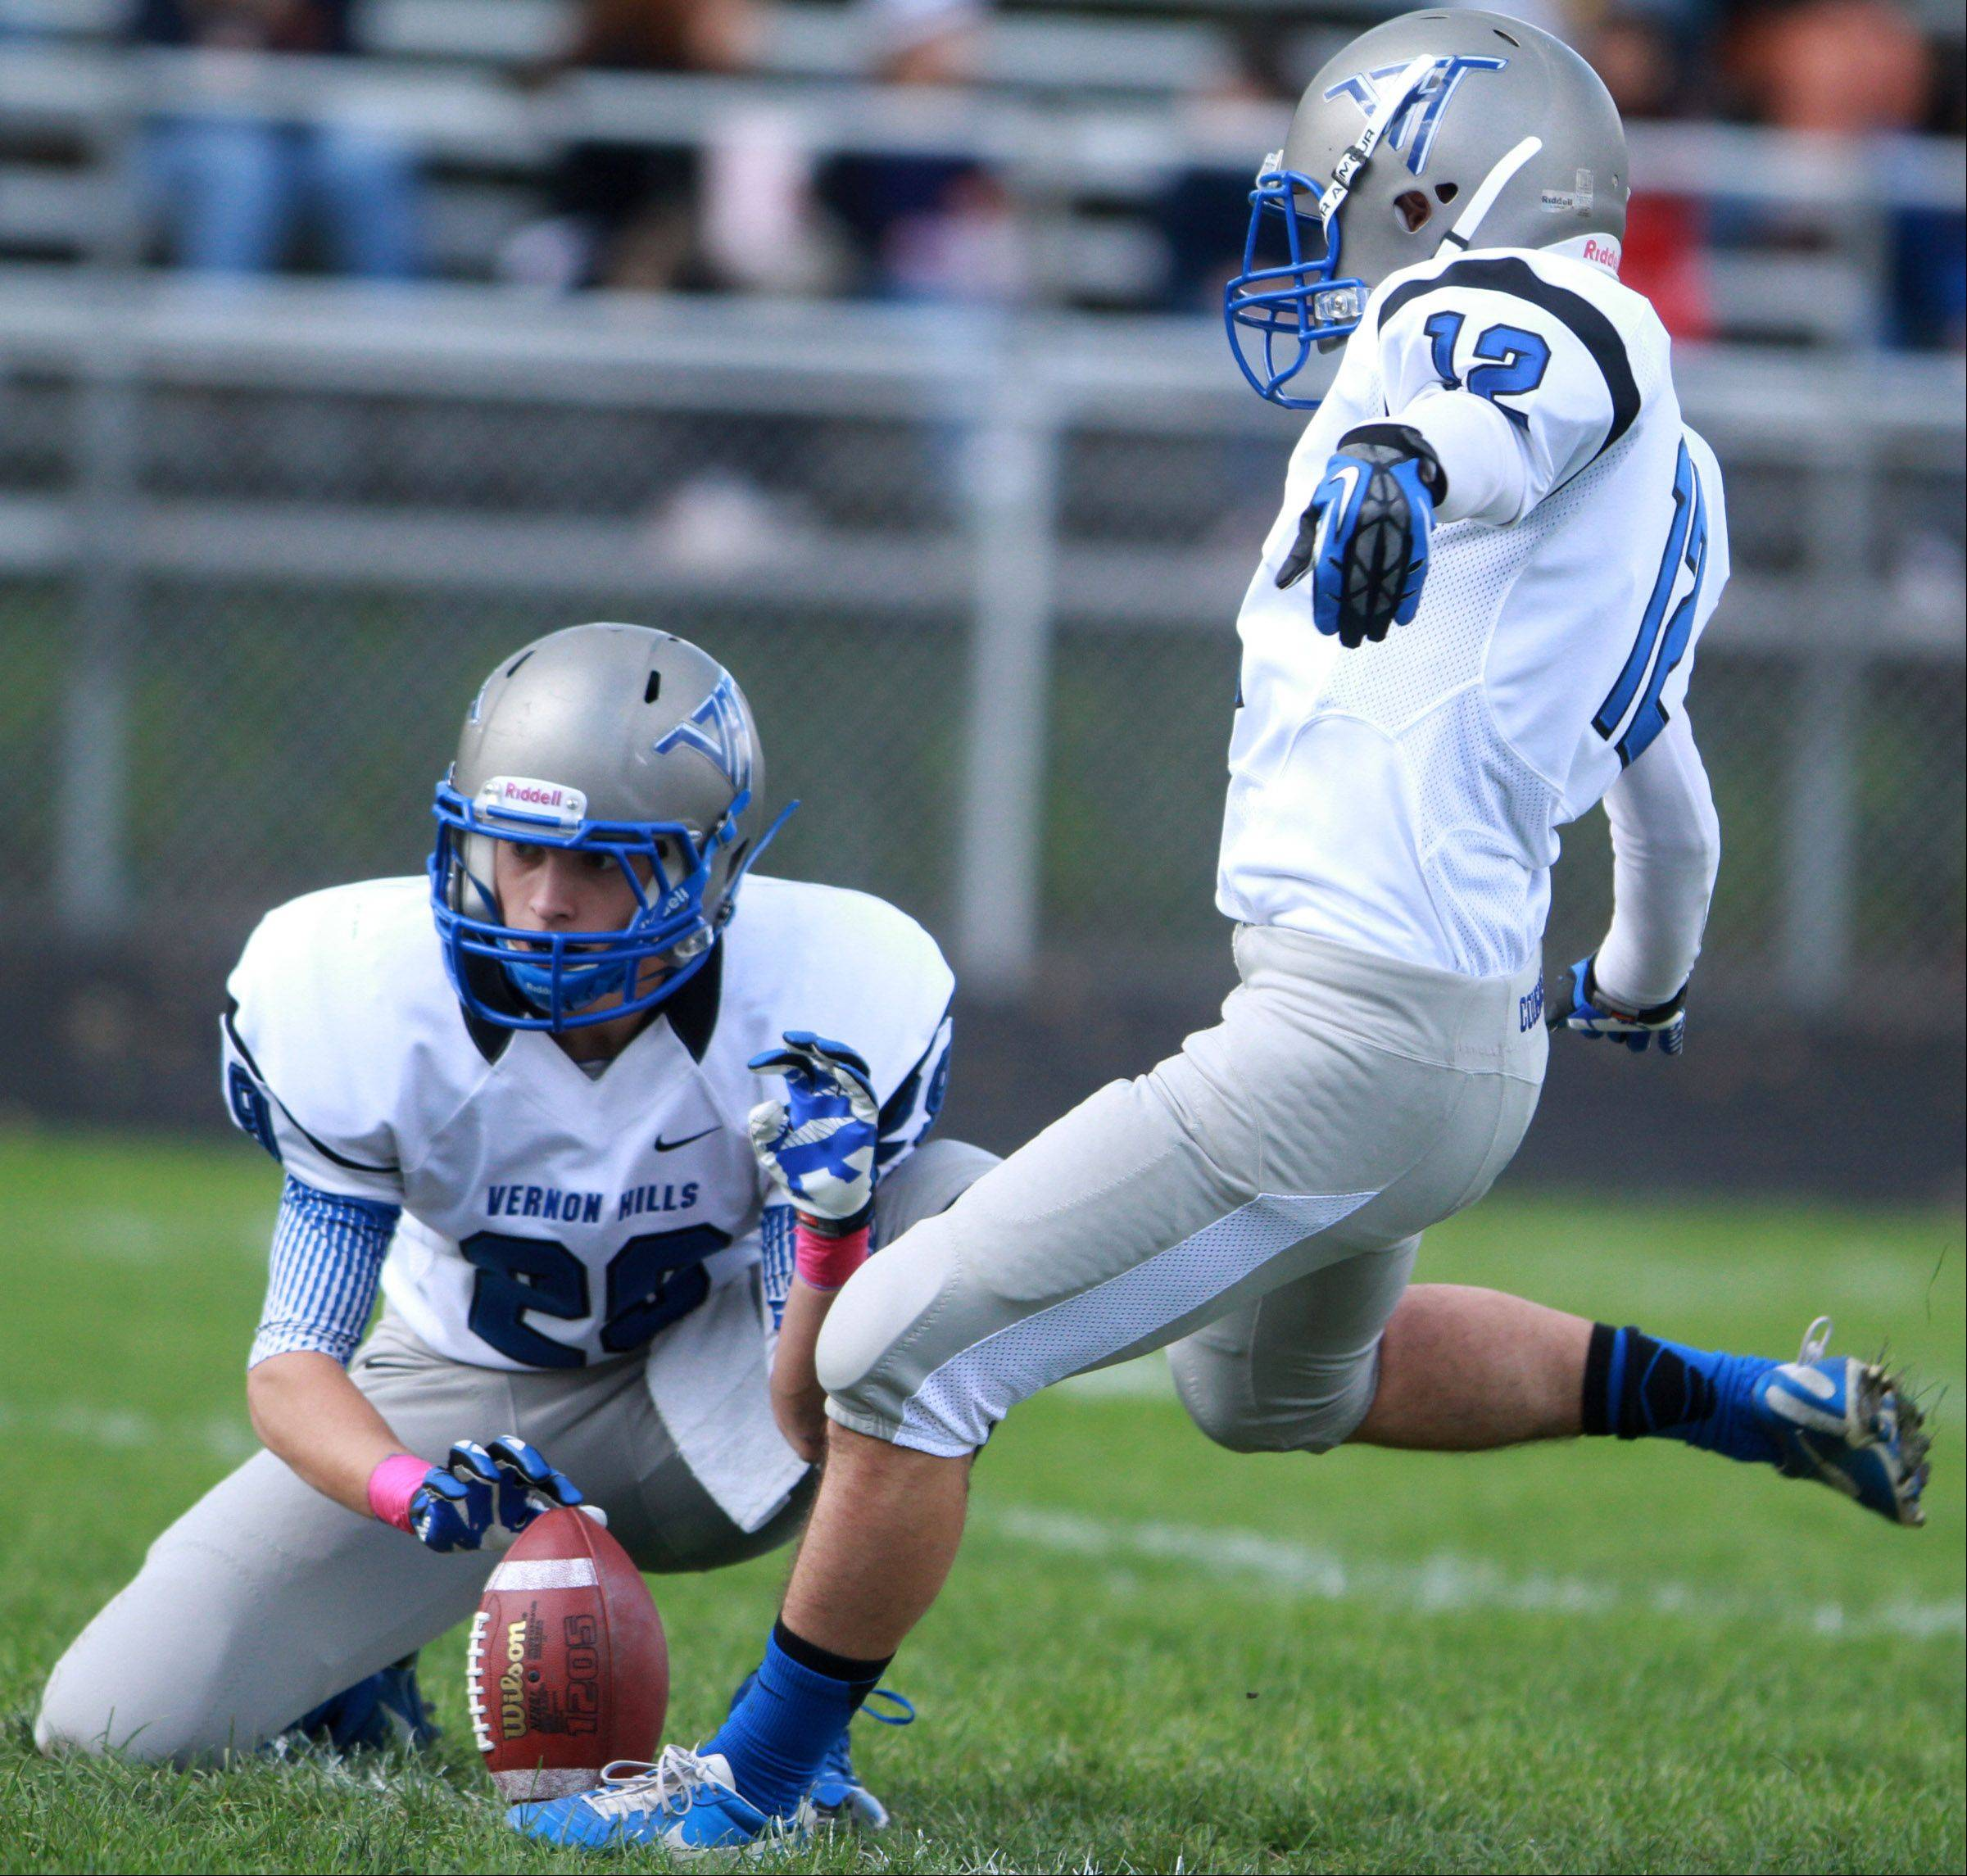 Vernon Hills kicker Jeremy Cohen kicks an extra point with Mike Mariella holding against host Round Lake on Saturday.